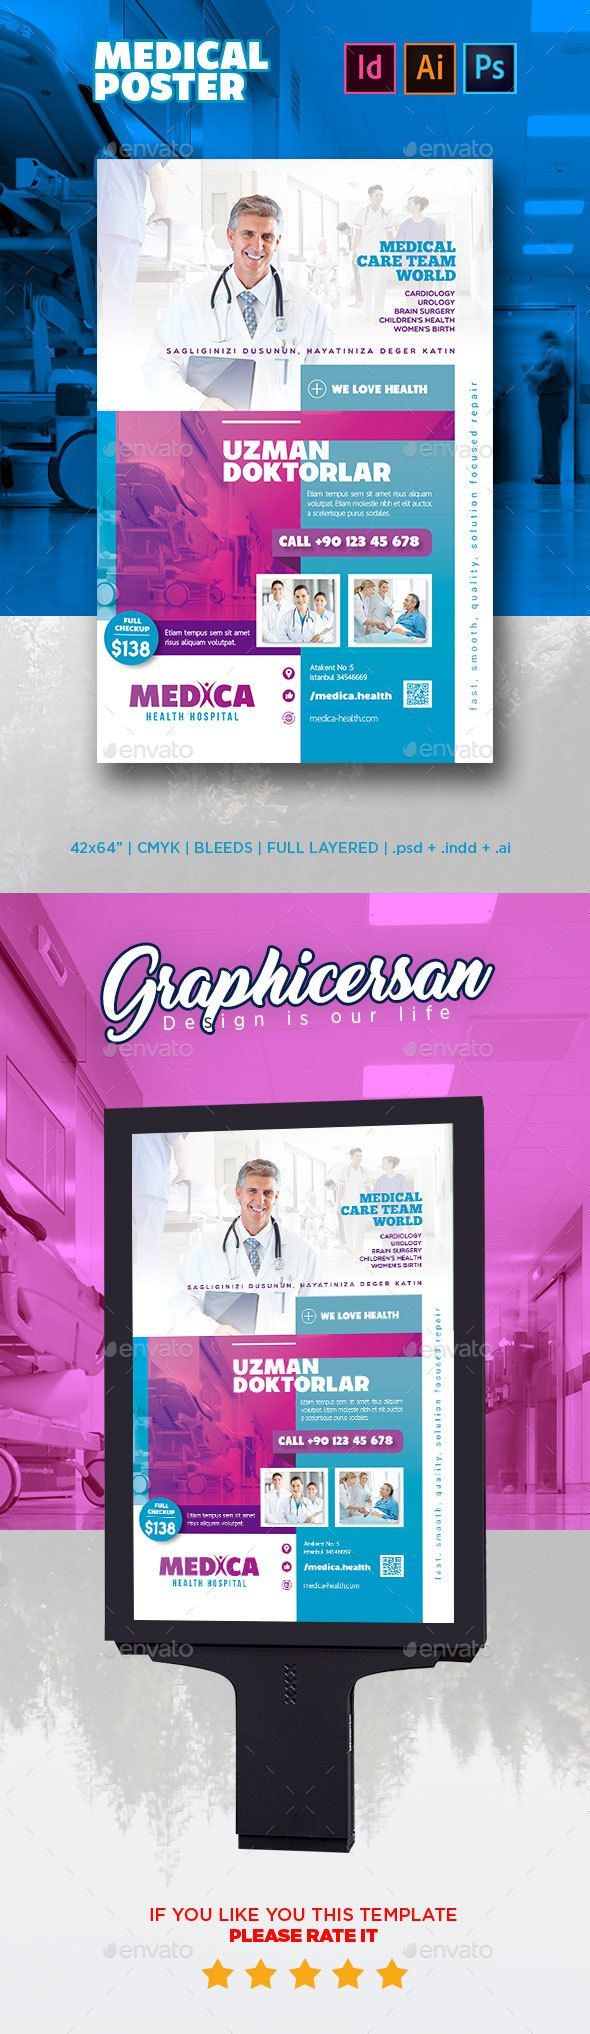 Medical Poster | Medical posters, Medical and Ai illustrator